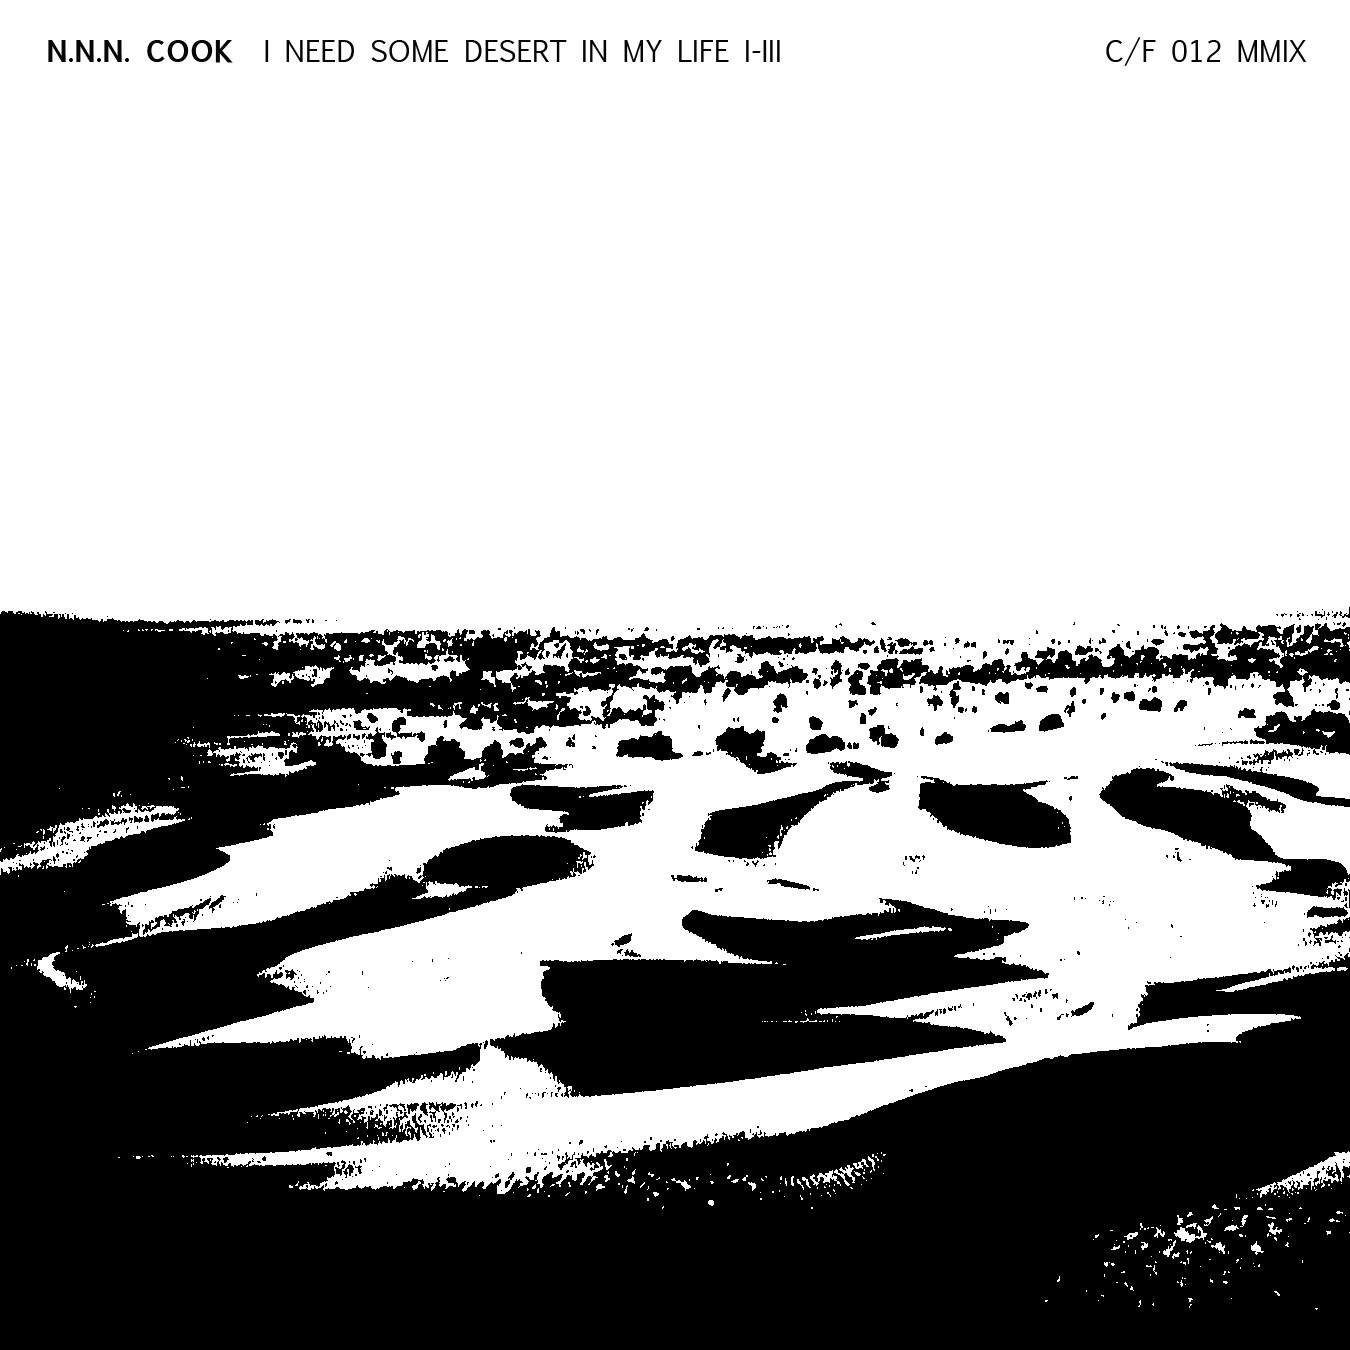 N.N.N. Cook, I Need A Little Desert In My Life Album Art